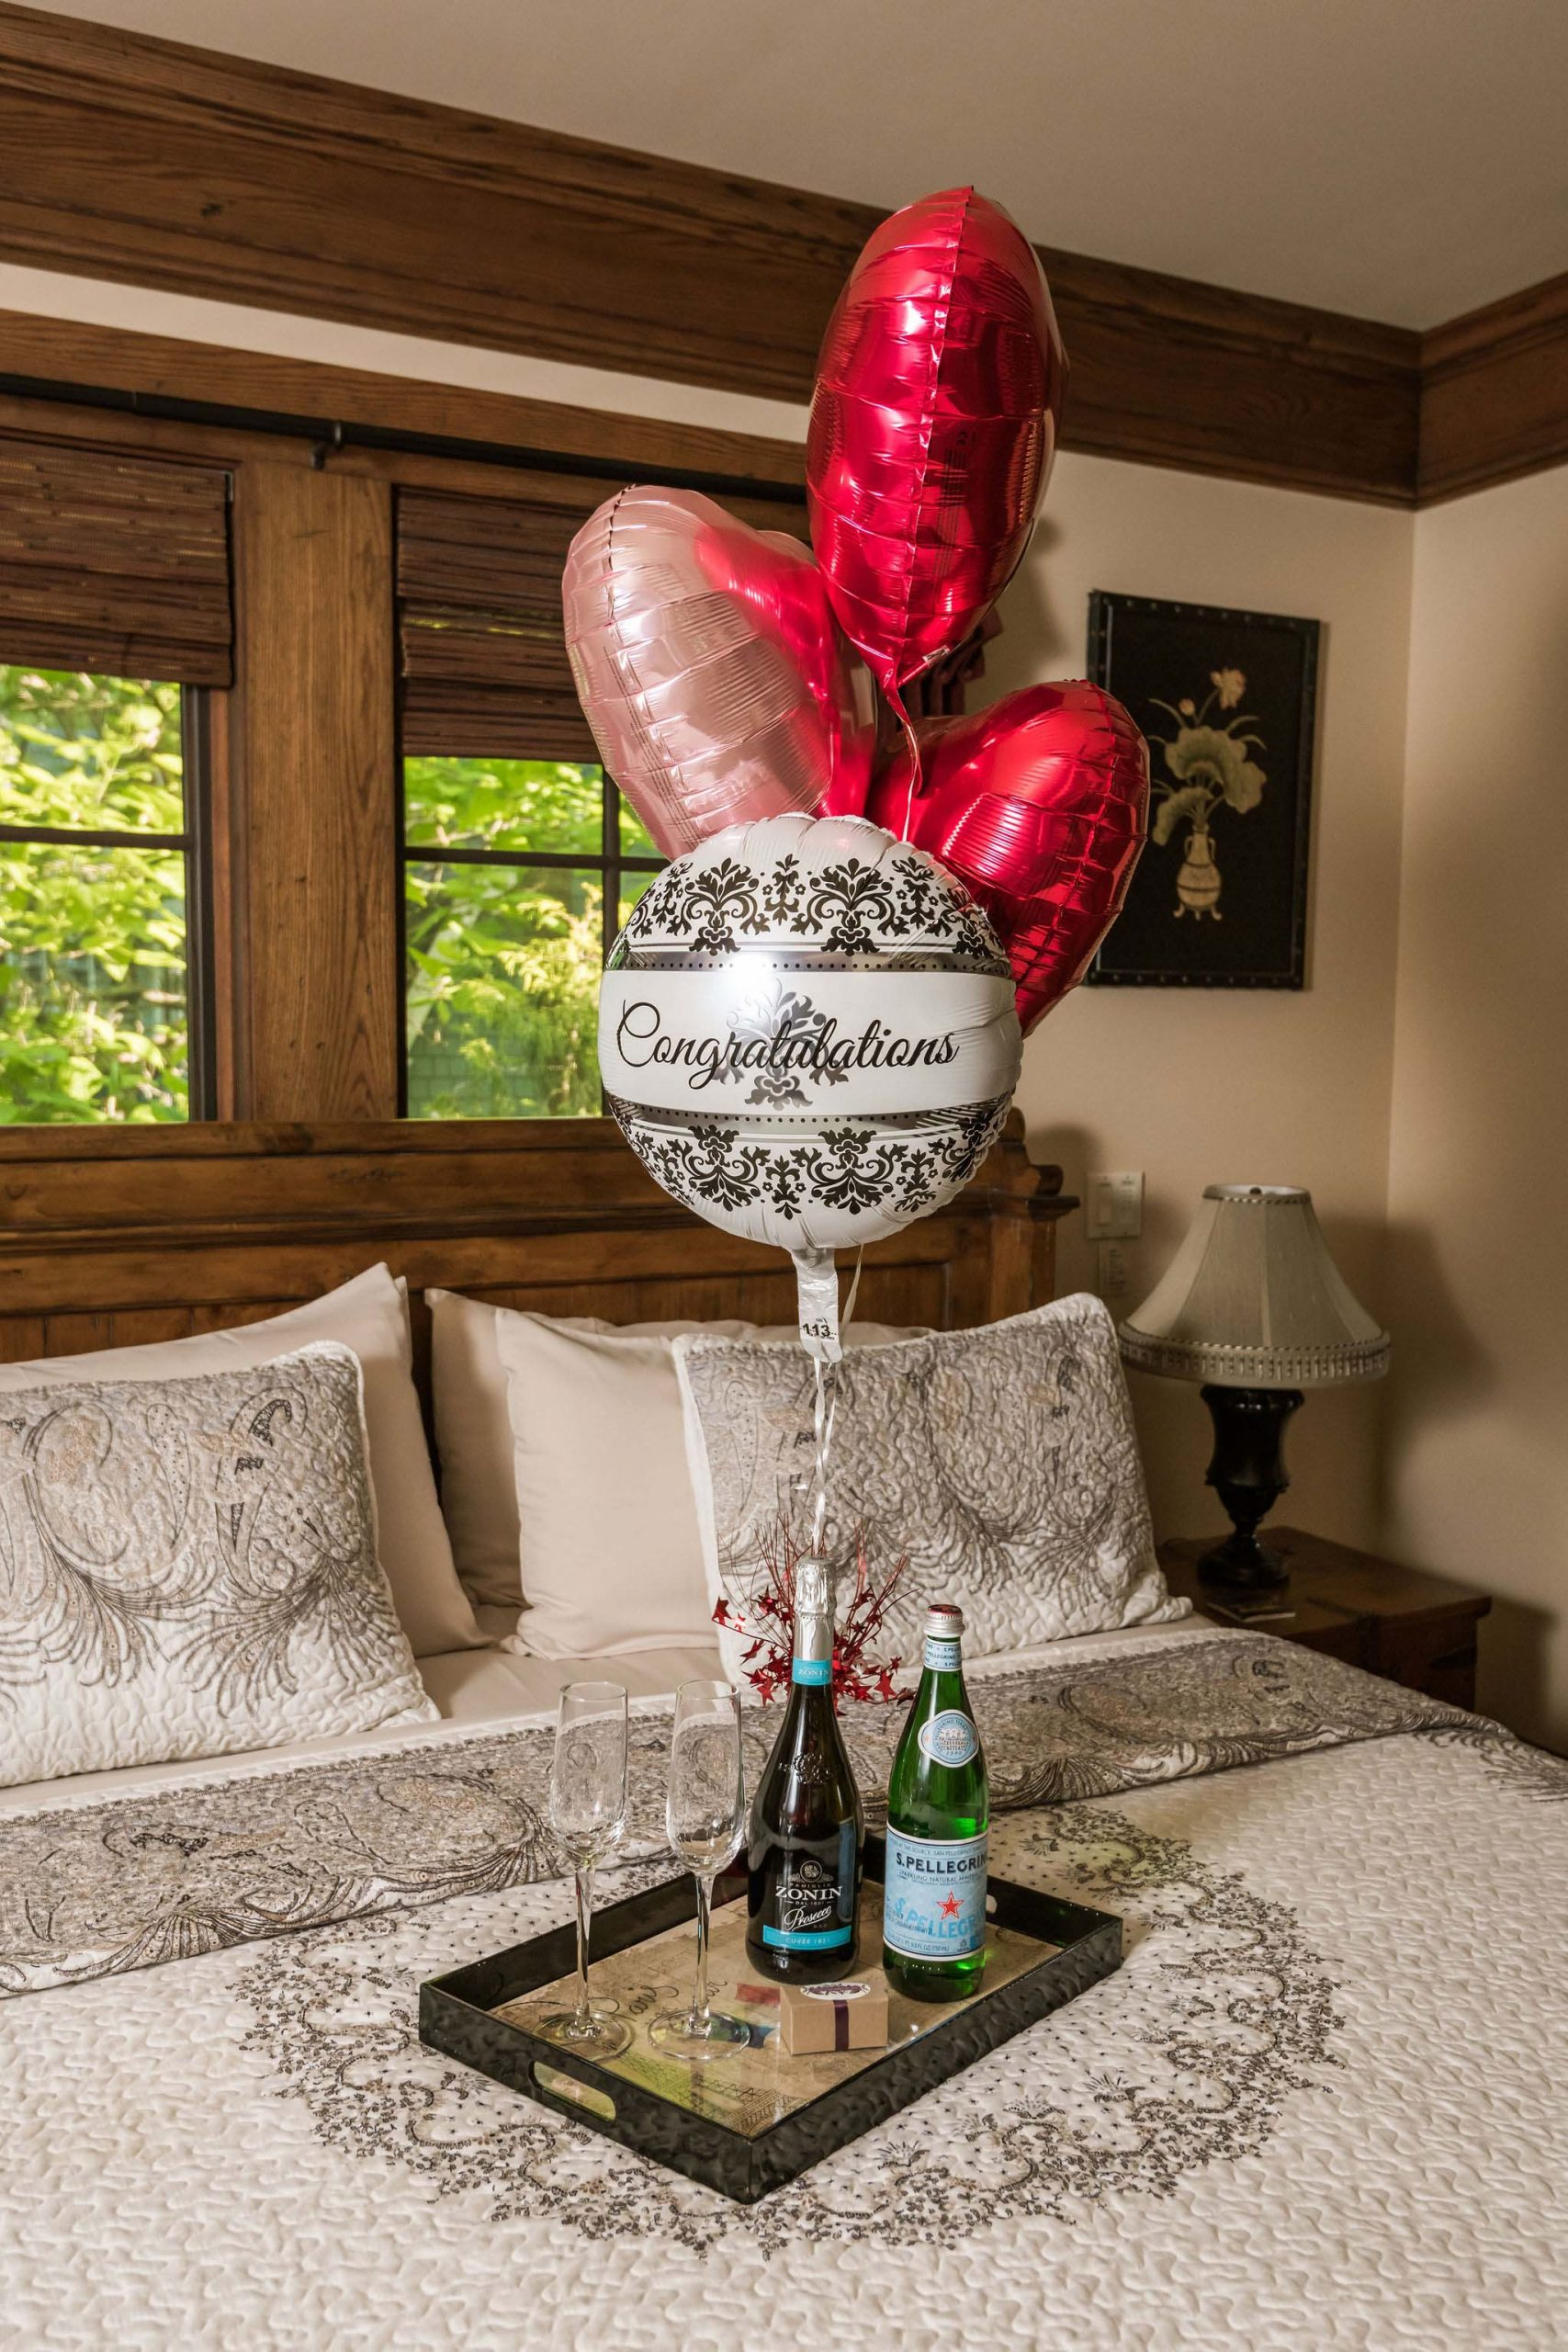 White and red heart-shaped balooons tied to a tray with a prosecco bottle, water bottle, chocolate truffles, and champagne glasses, arranged on a king bed.